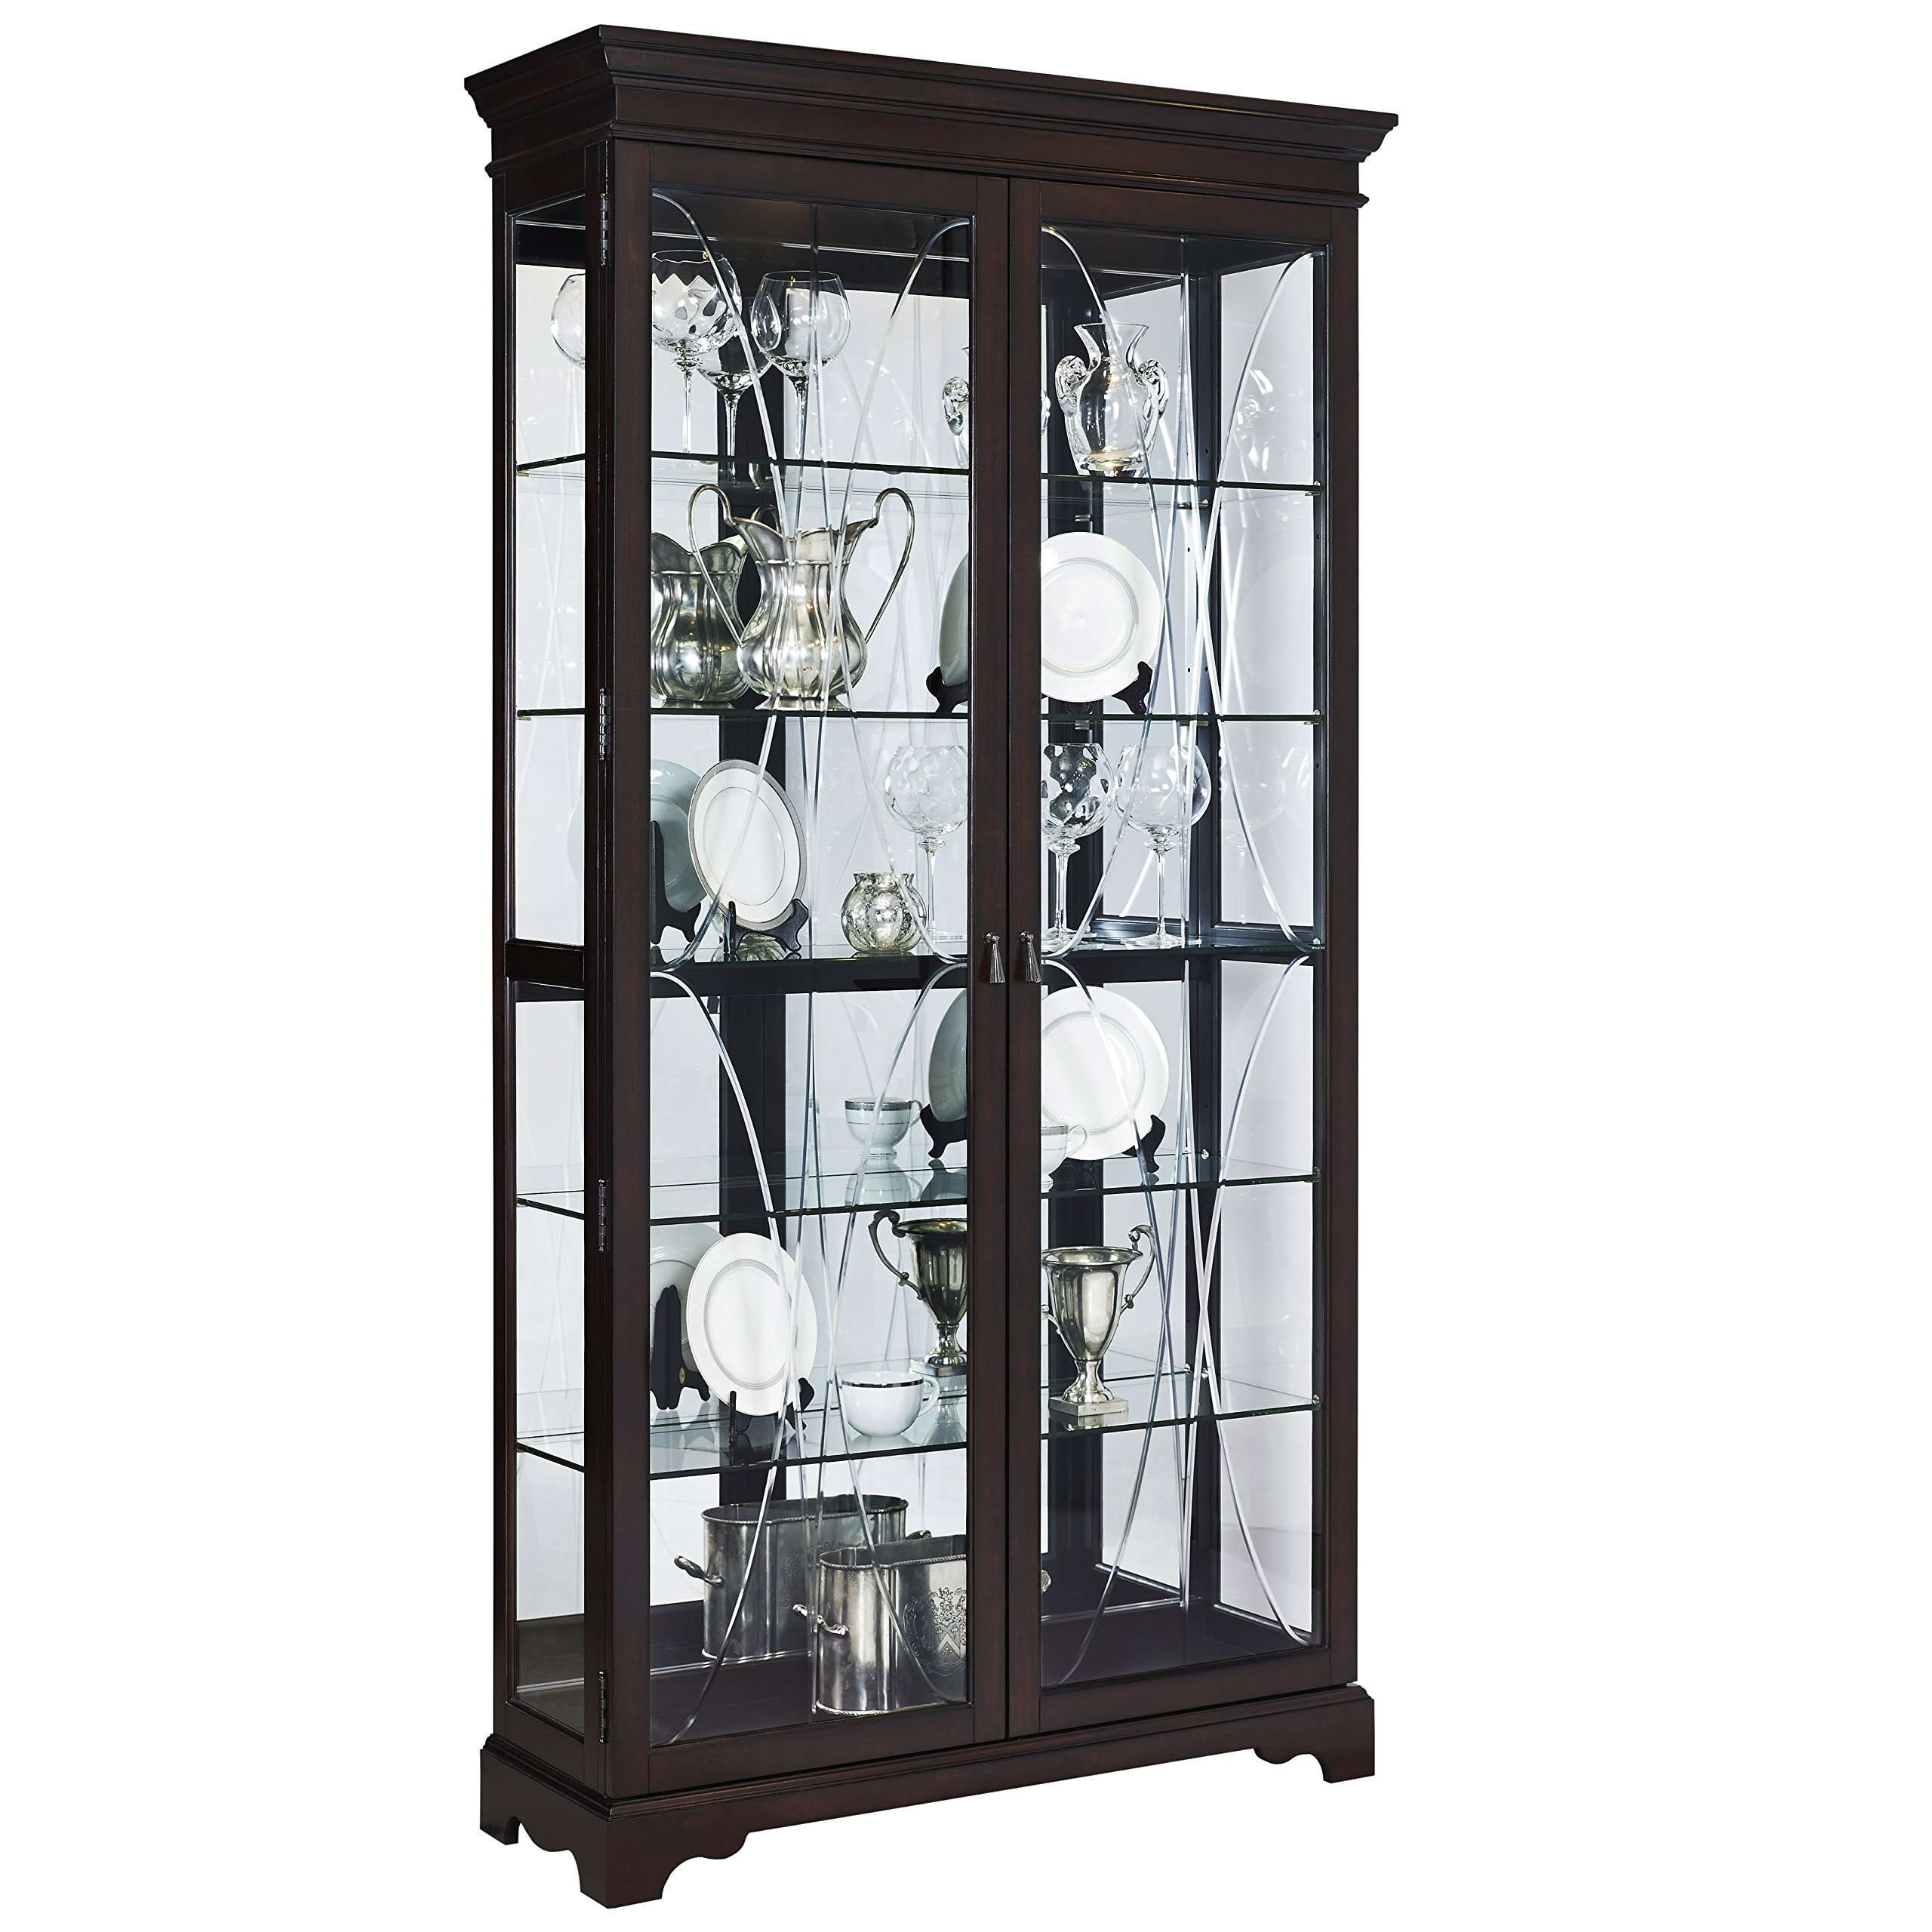 Pulaski P021579 Collection Sable Two Door Curio Display Cabinet, 44'' x 15'' x 81.5'', Poplar Brown by Pulaski (Image #1)